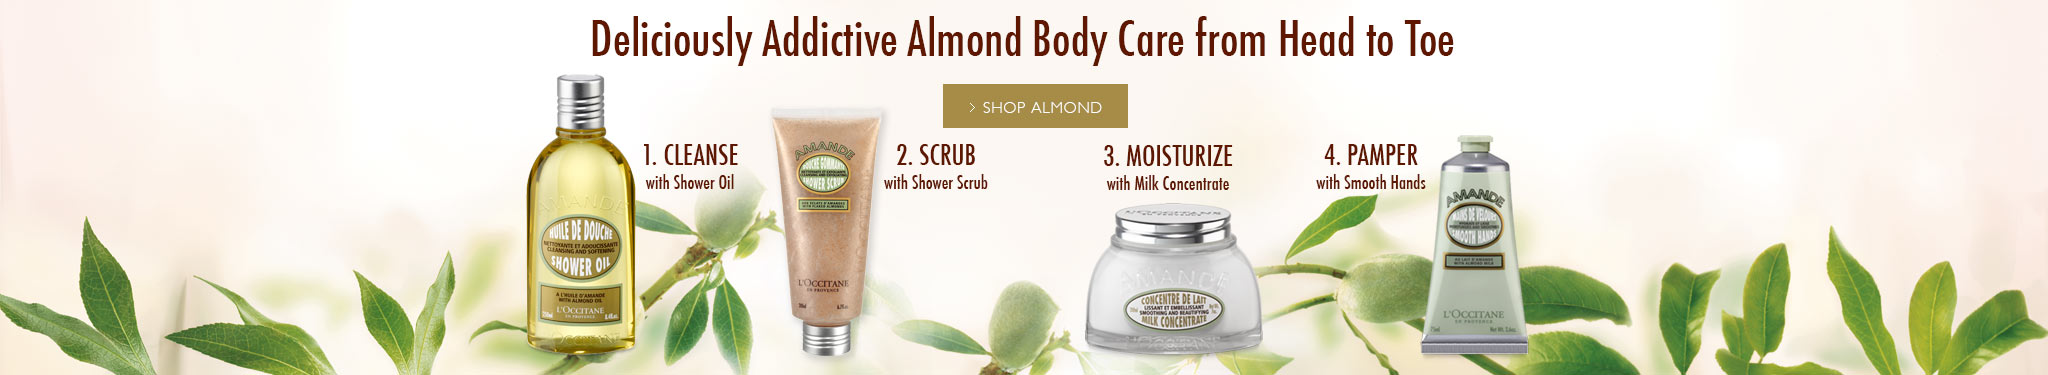 Deliciously Addictive Almond Body Care from Head to Toe